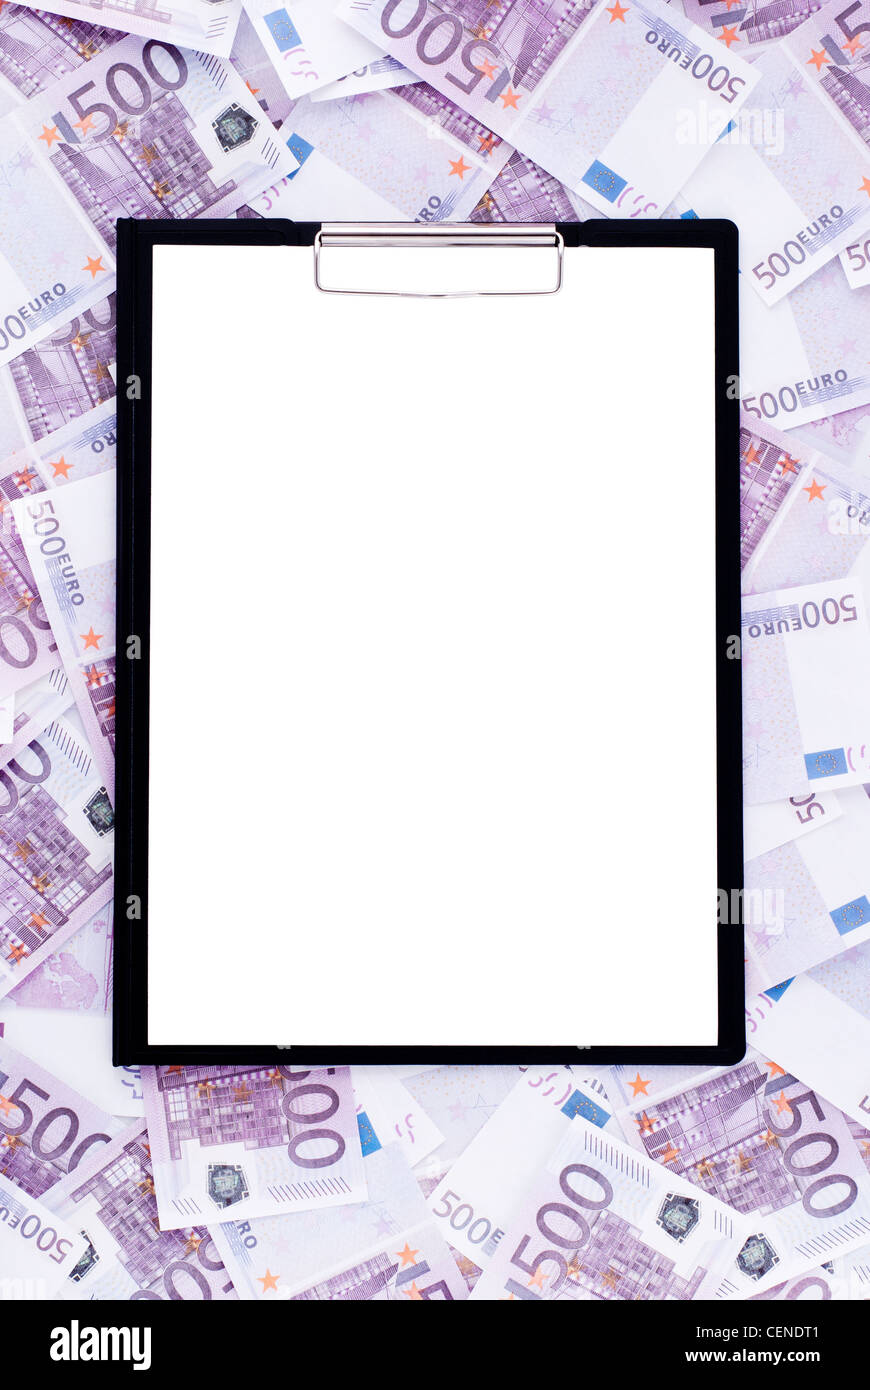 Clipboard surrounded by money - Stock Image